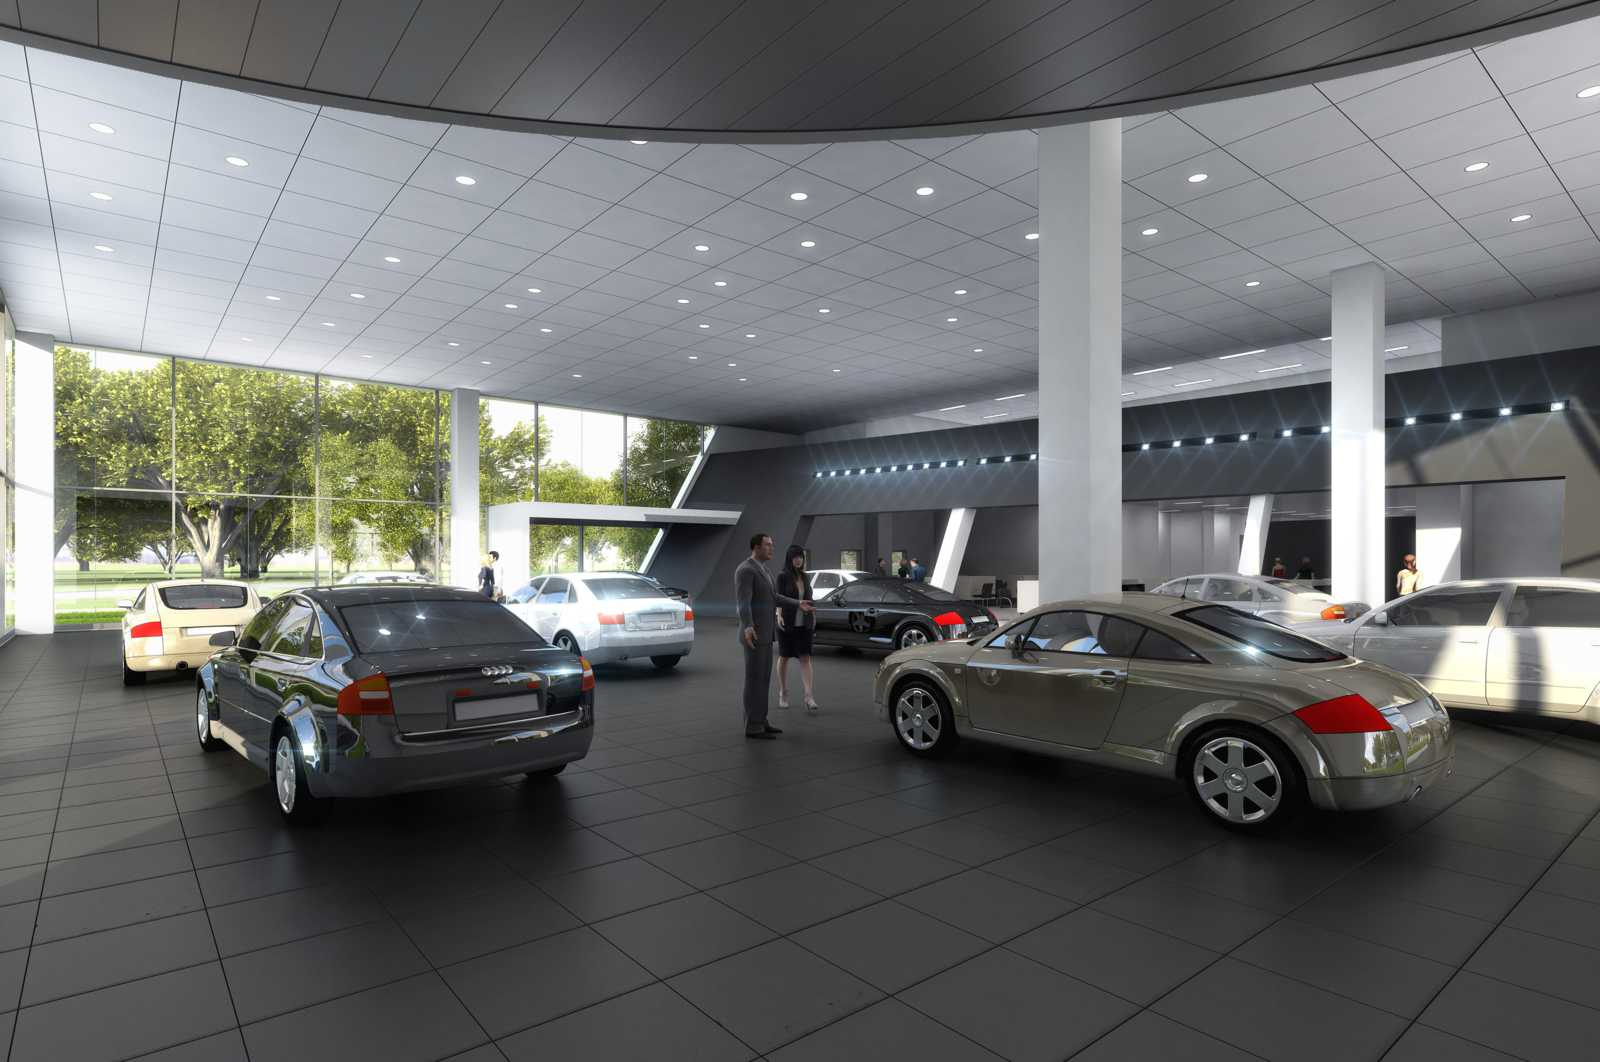 momentum audi in now audi central houston at 59 and greenbriar. Cars Review. Best American Auto & Cars Review